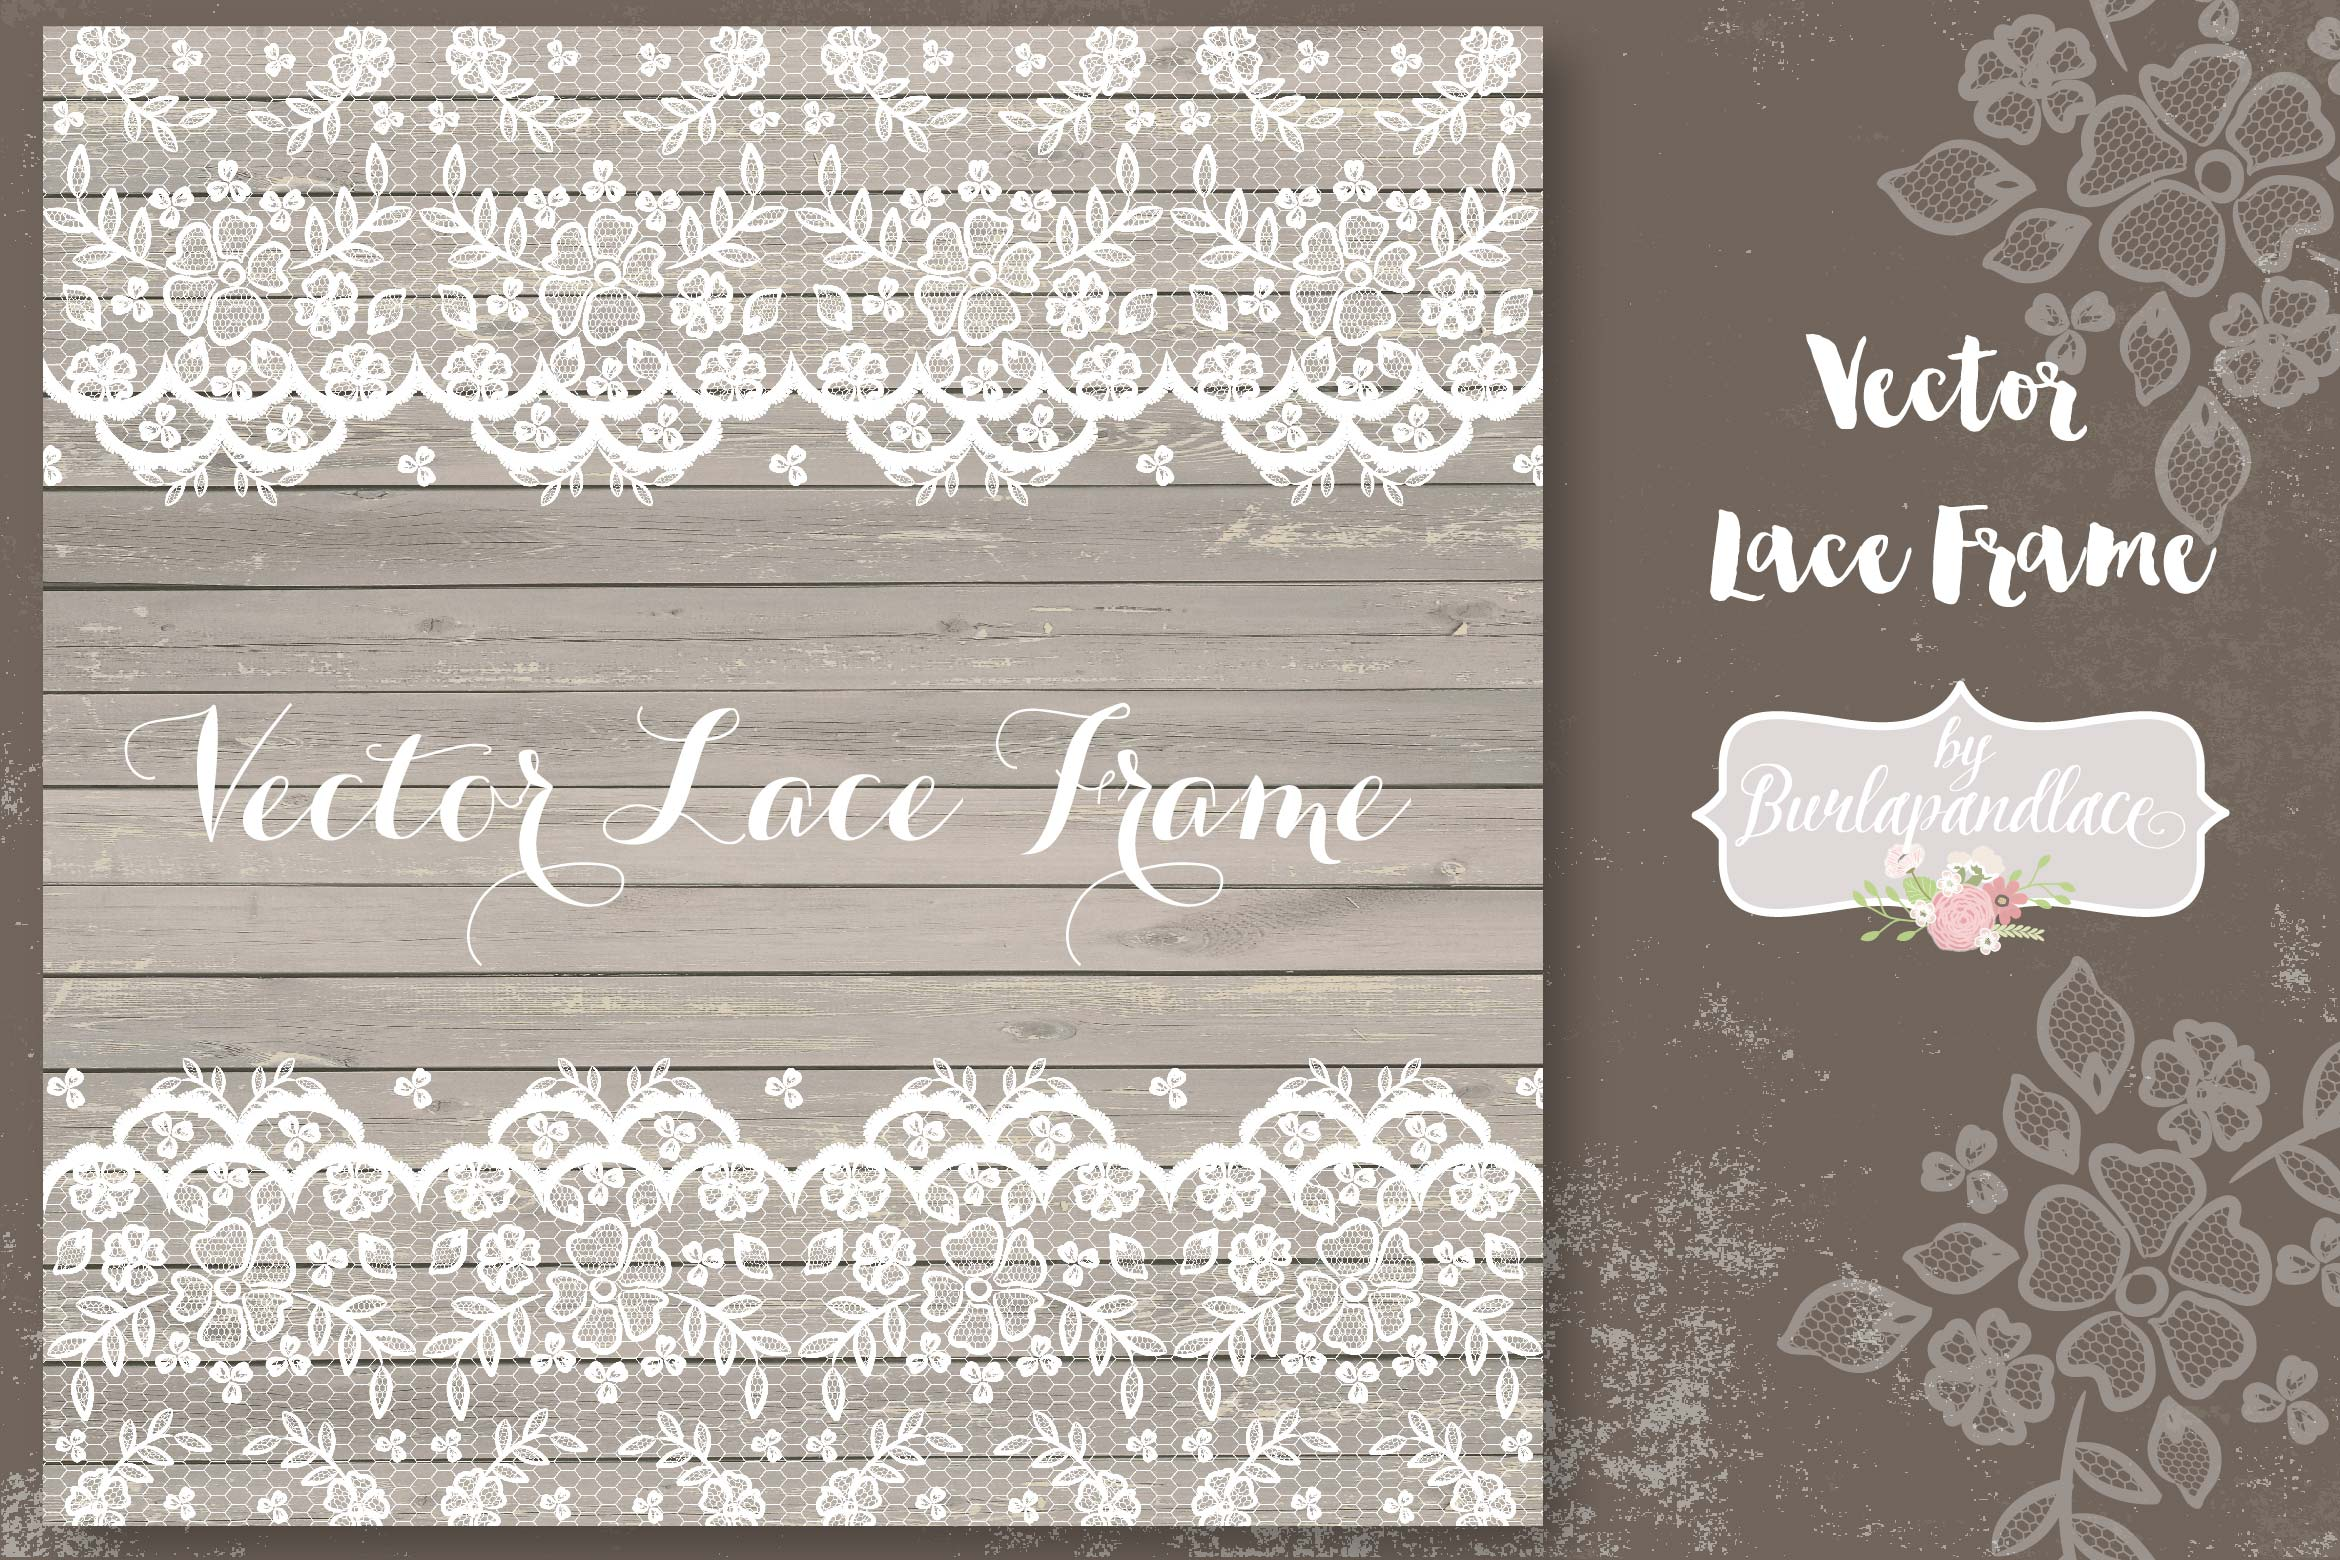 Vector lace frame wedding example image 1